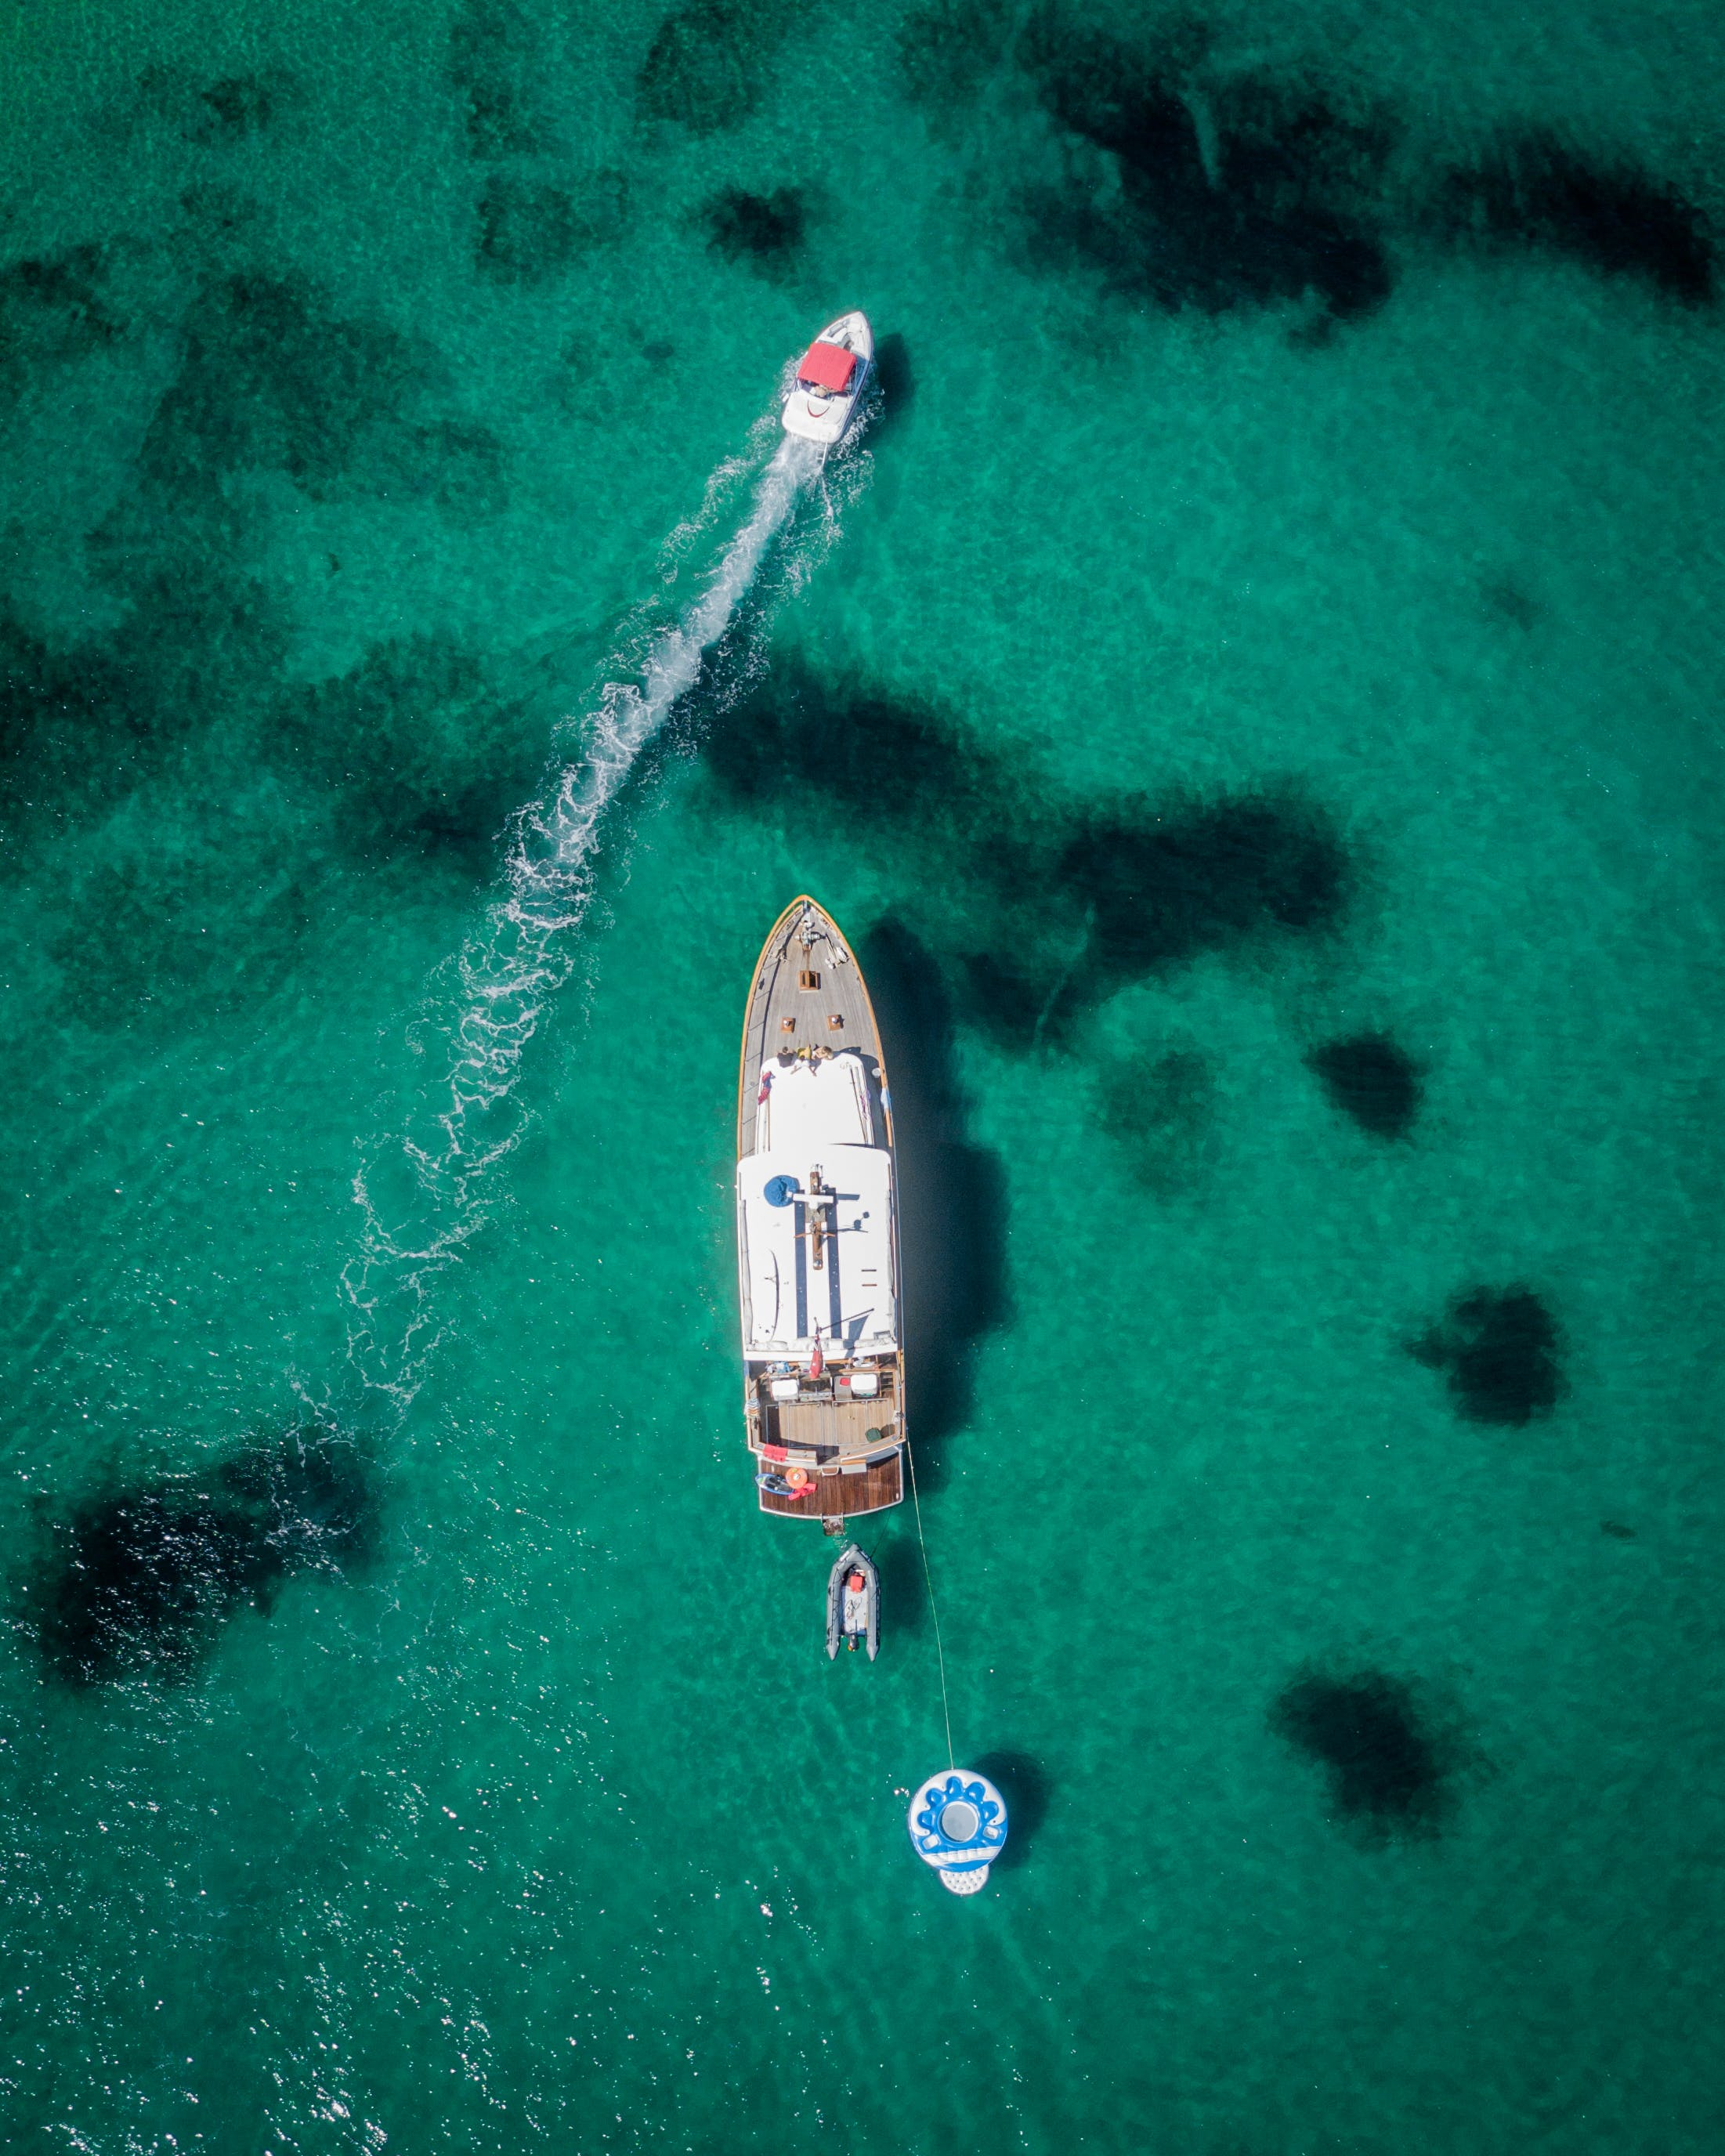 Aerial Photography of White and Brown Boat